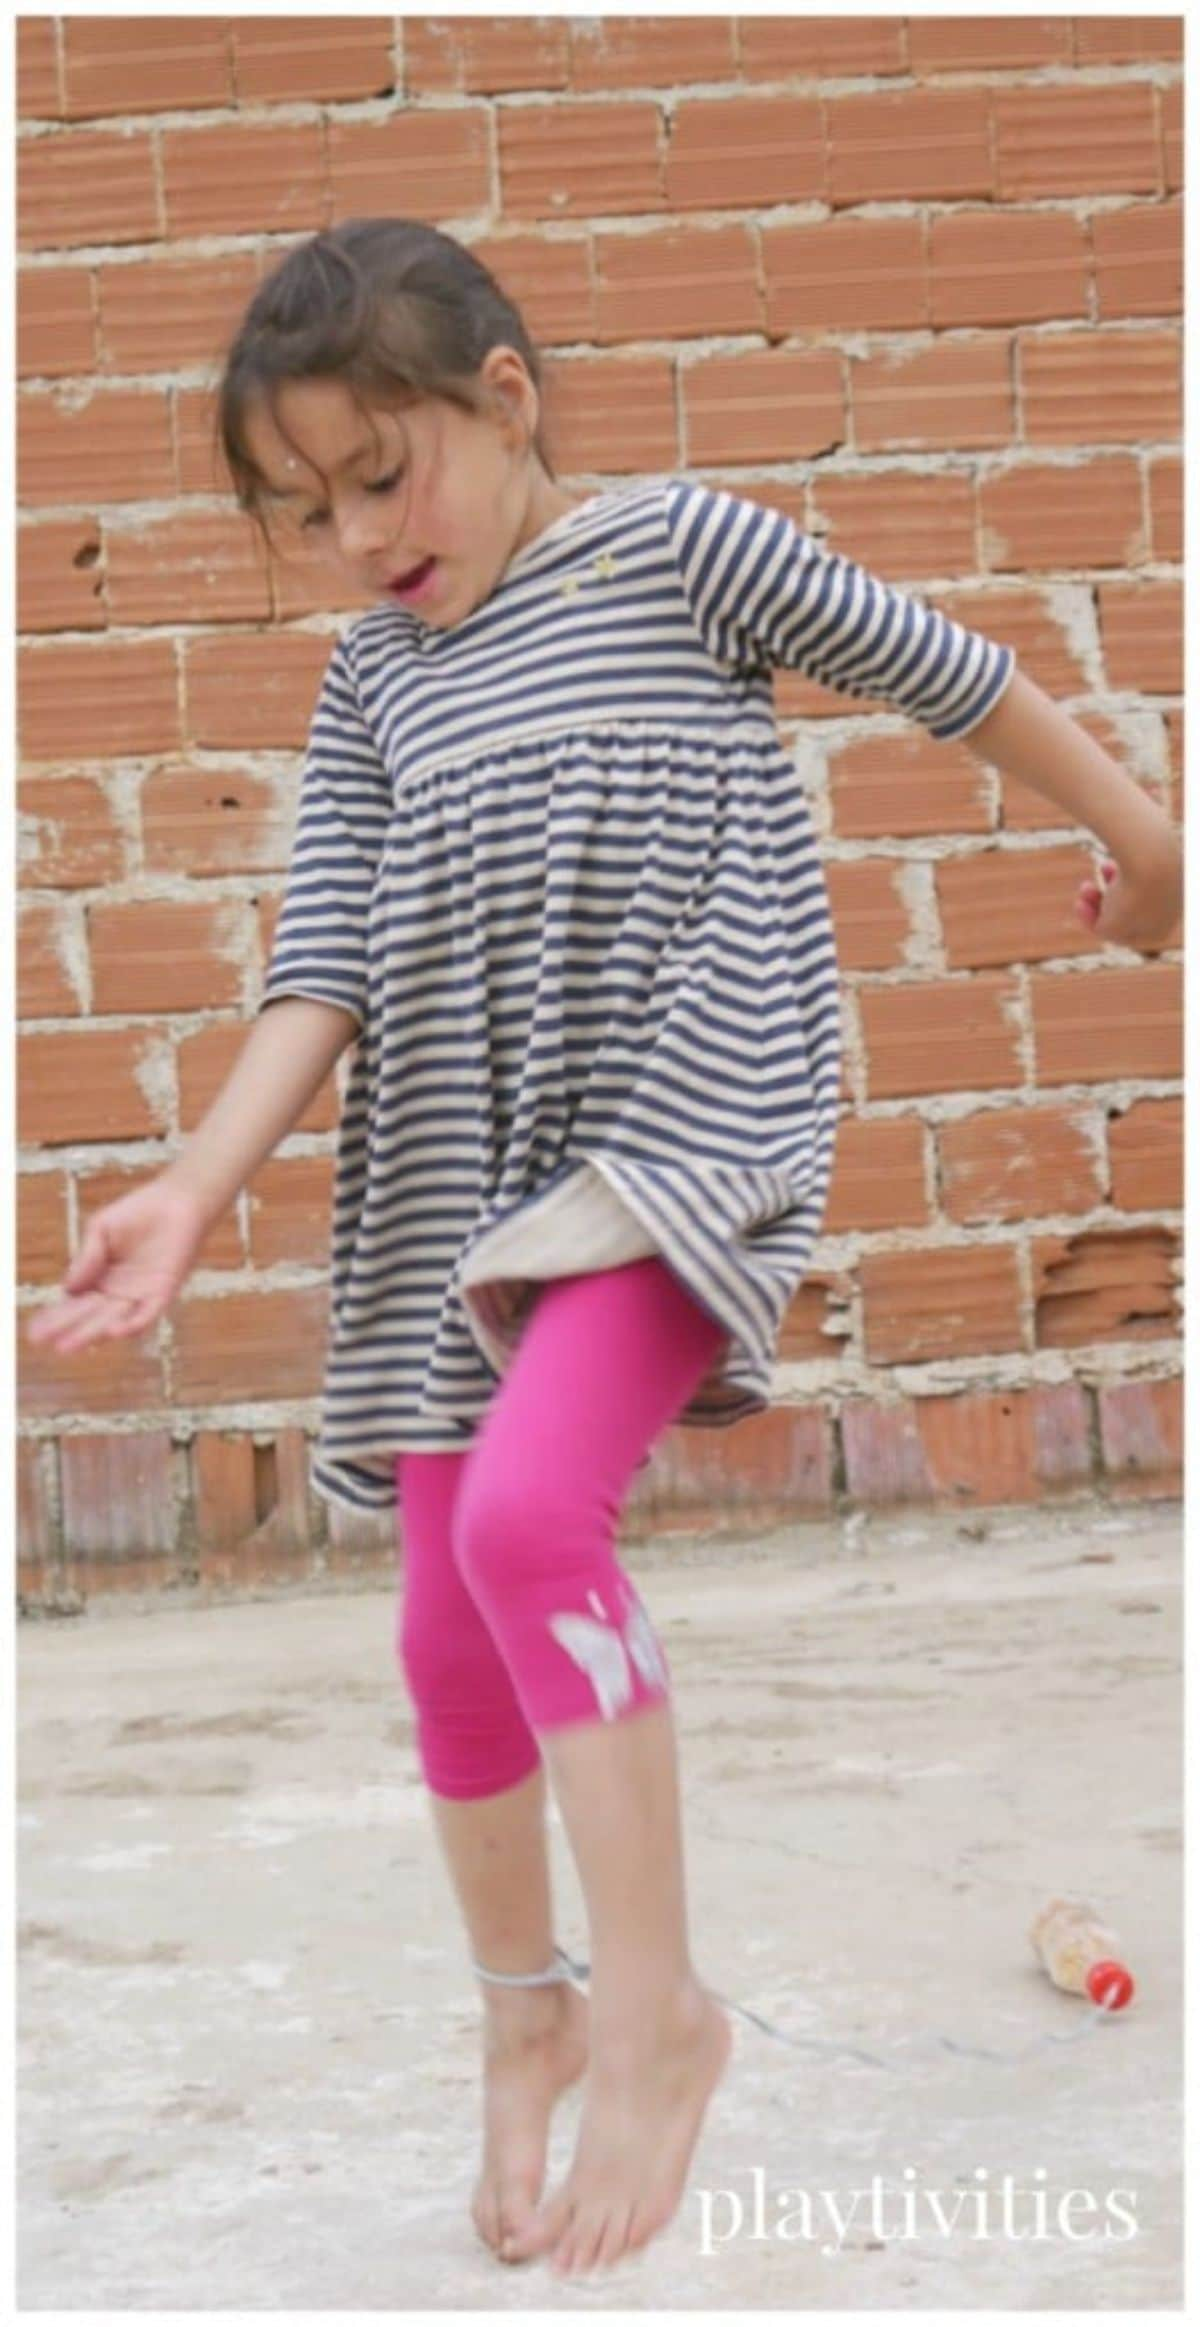 A girl in a striped top and pink leggings is standing in a yard in front of a brick wall. She has a string tied around her waist with a plastic bottle on the end of it